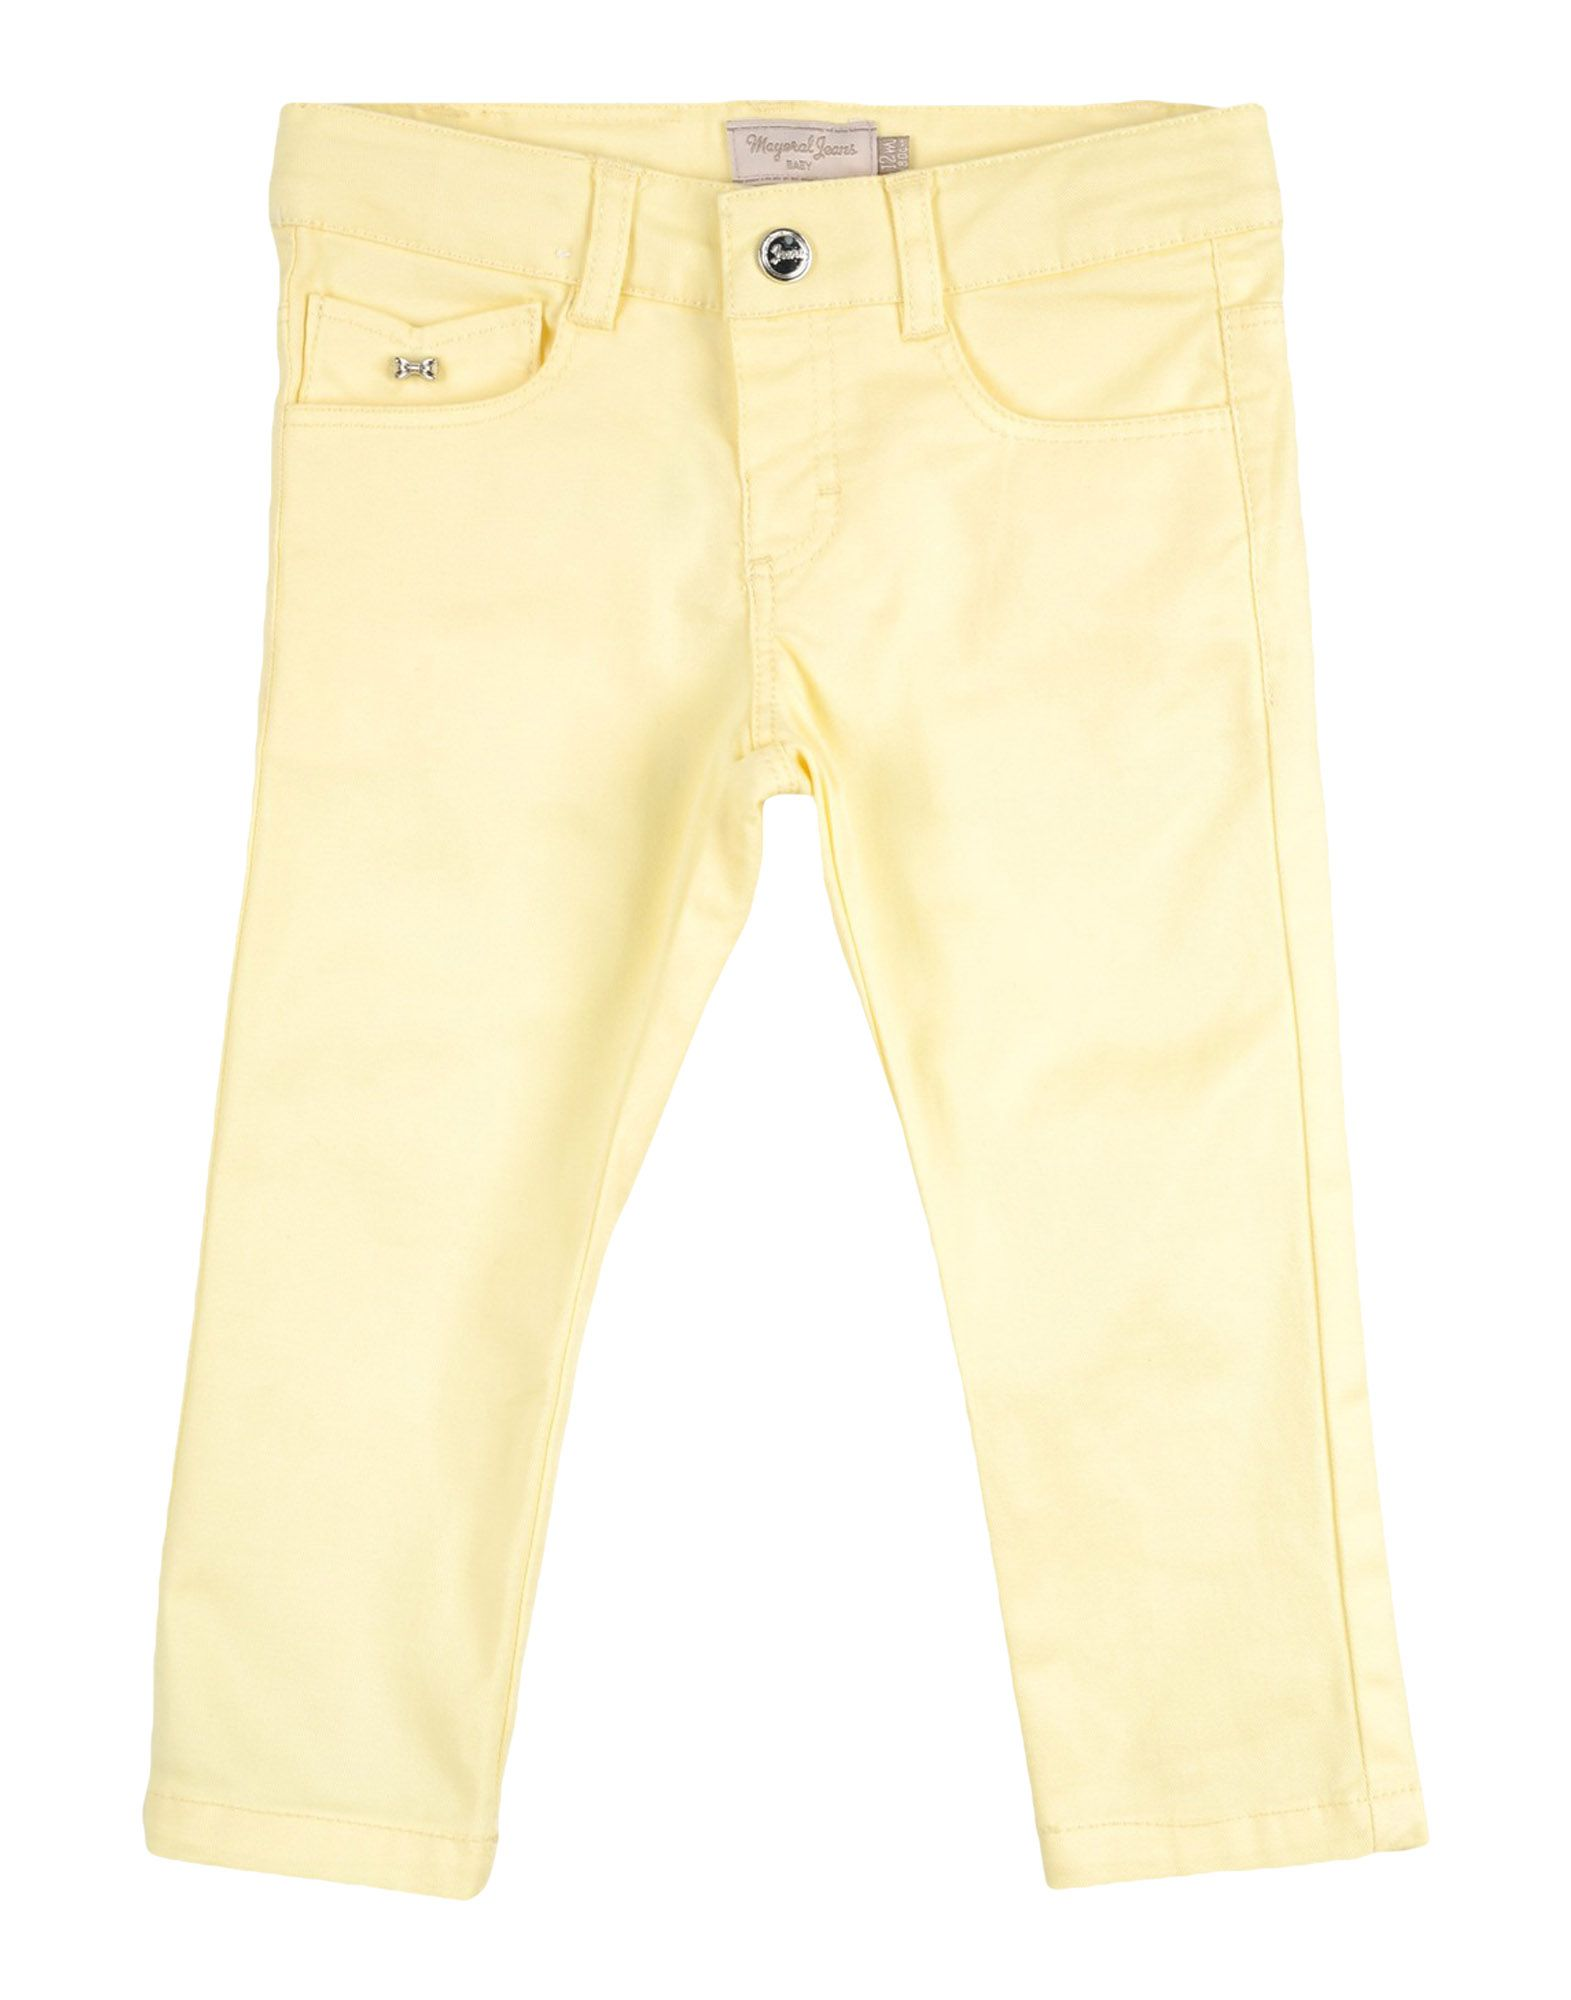 MAYORAL Casual Pants in Light Yellow